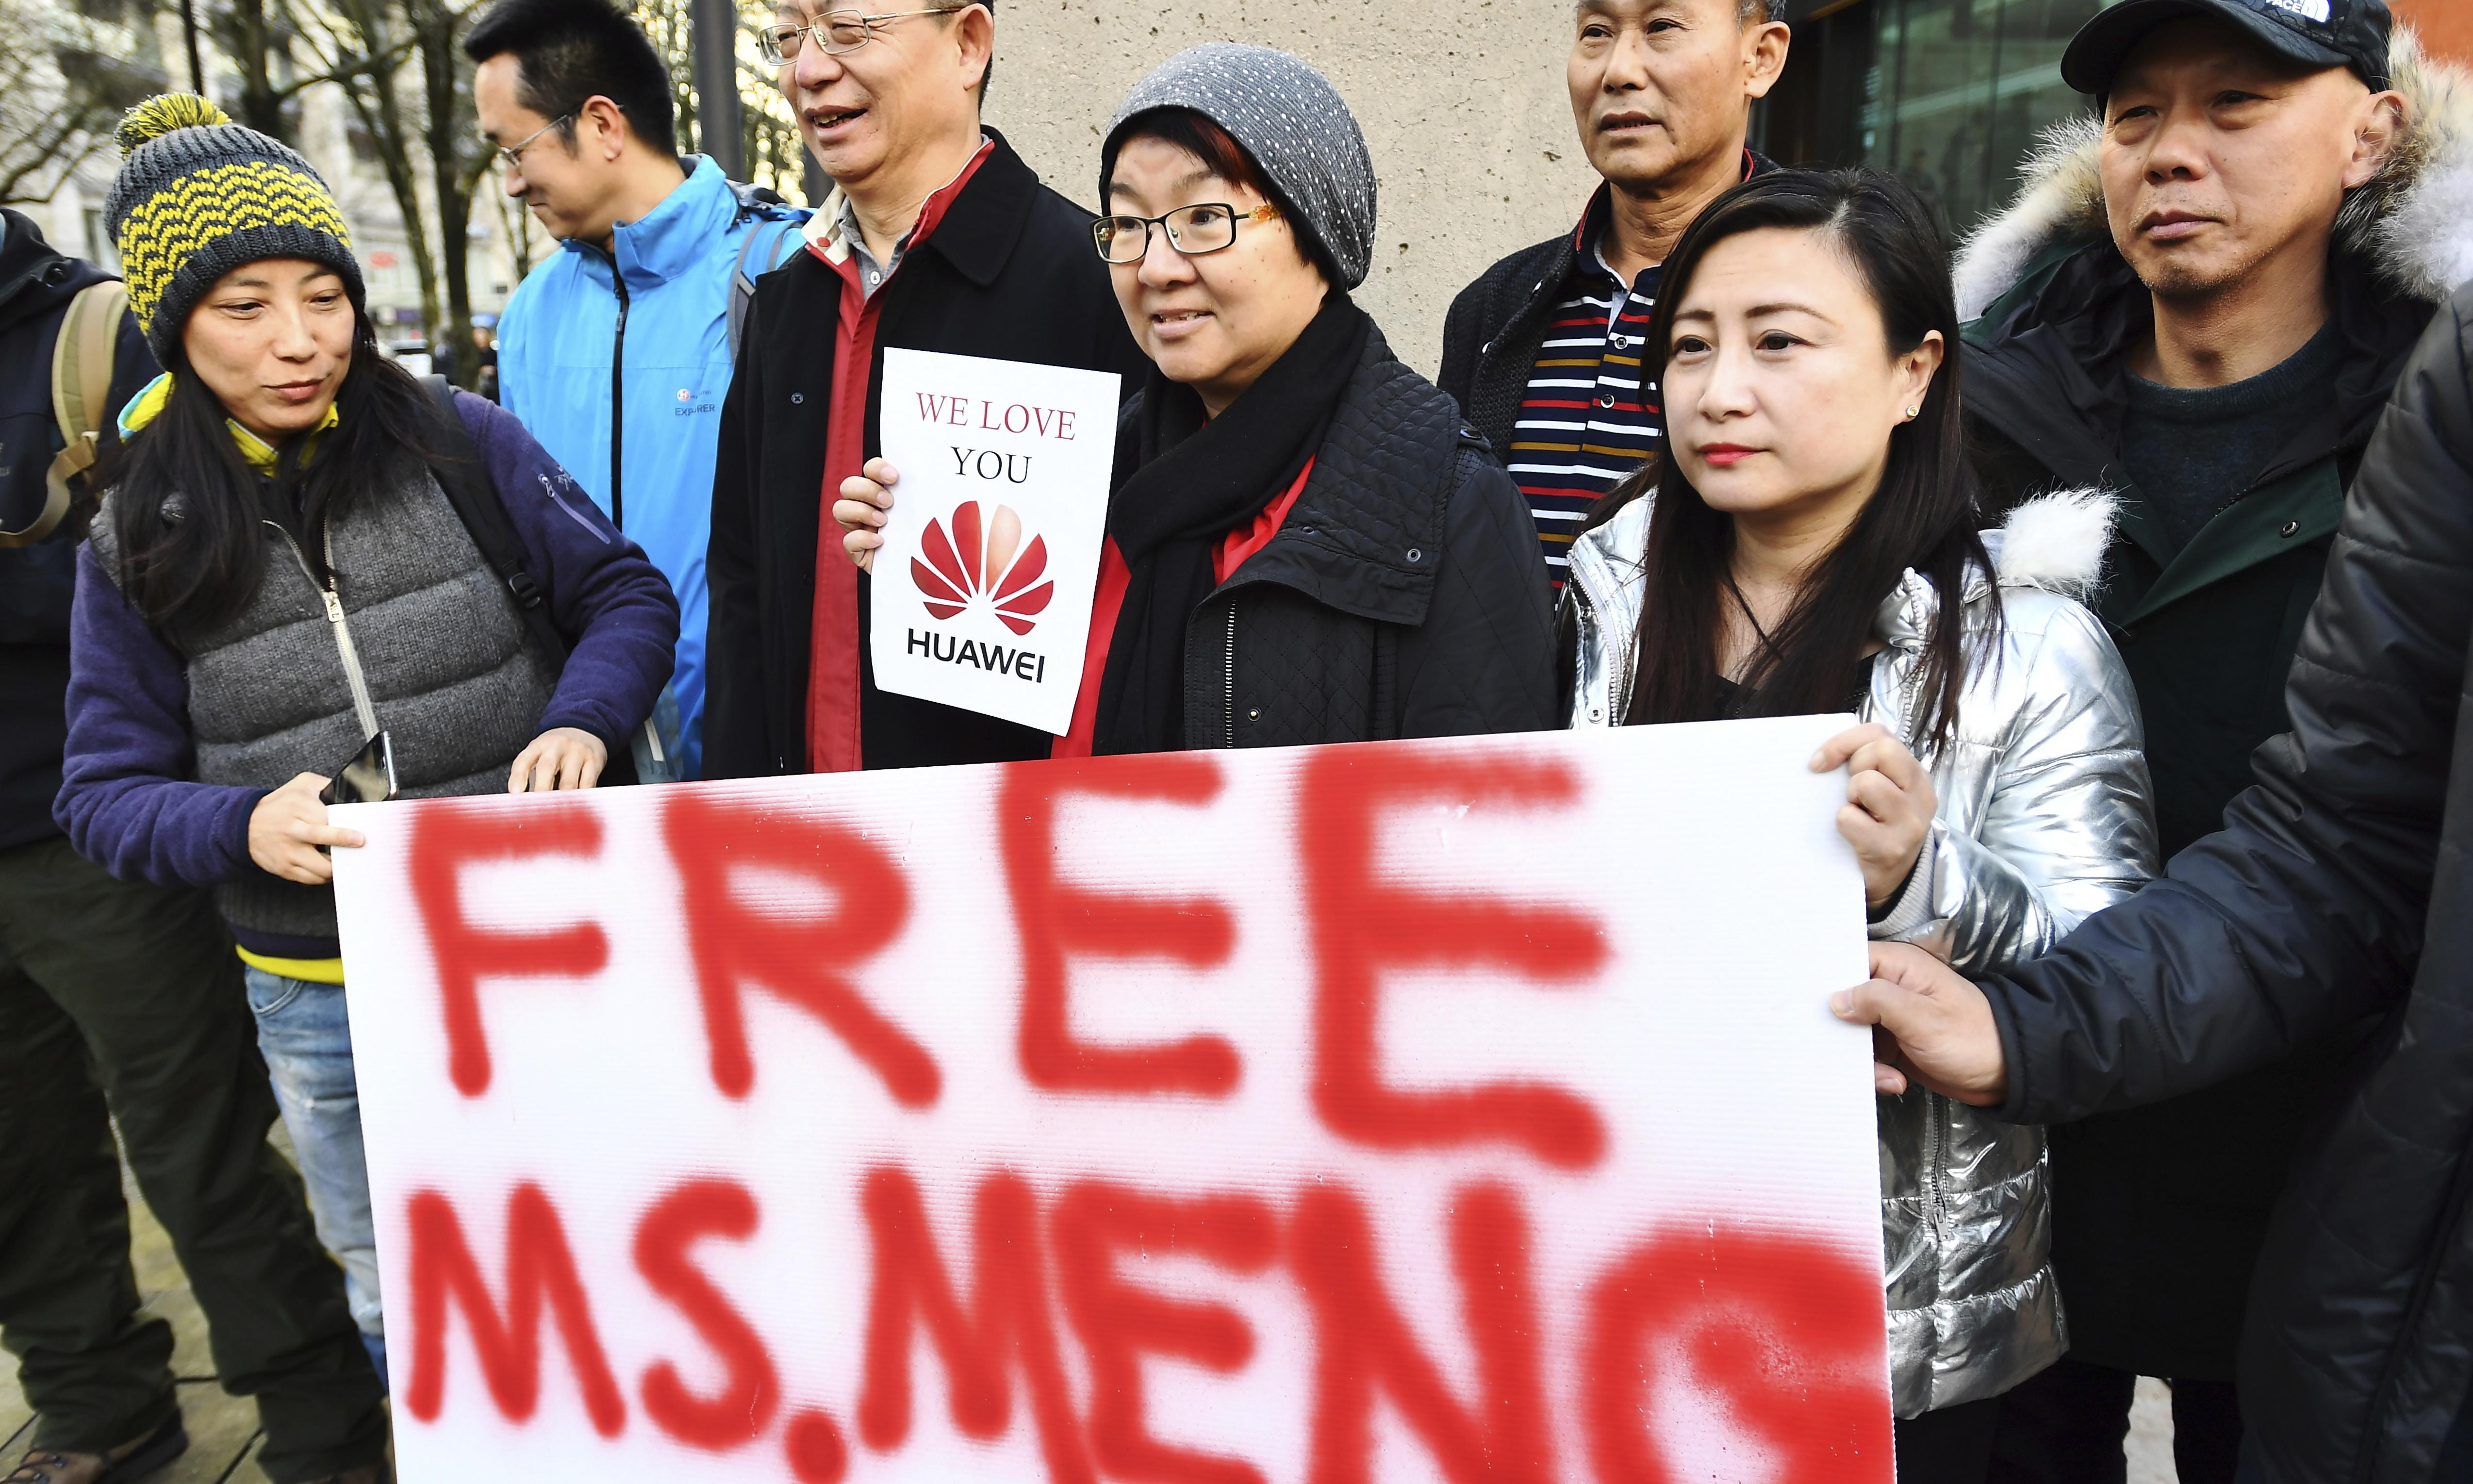 Huawei affair reveals superpowers' imperial rules of engagement